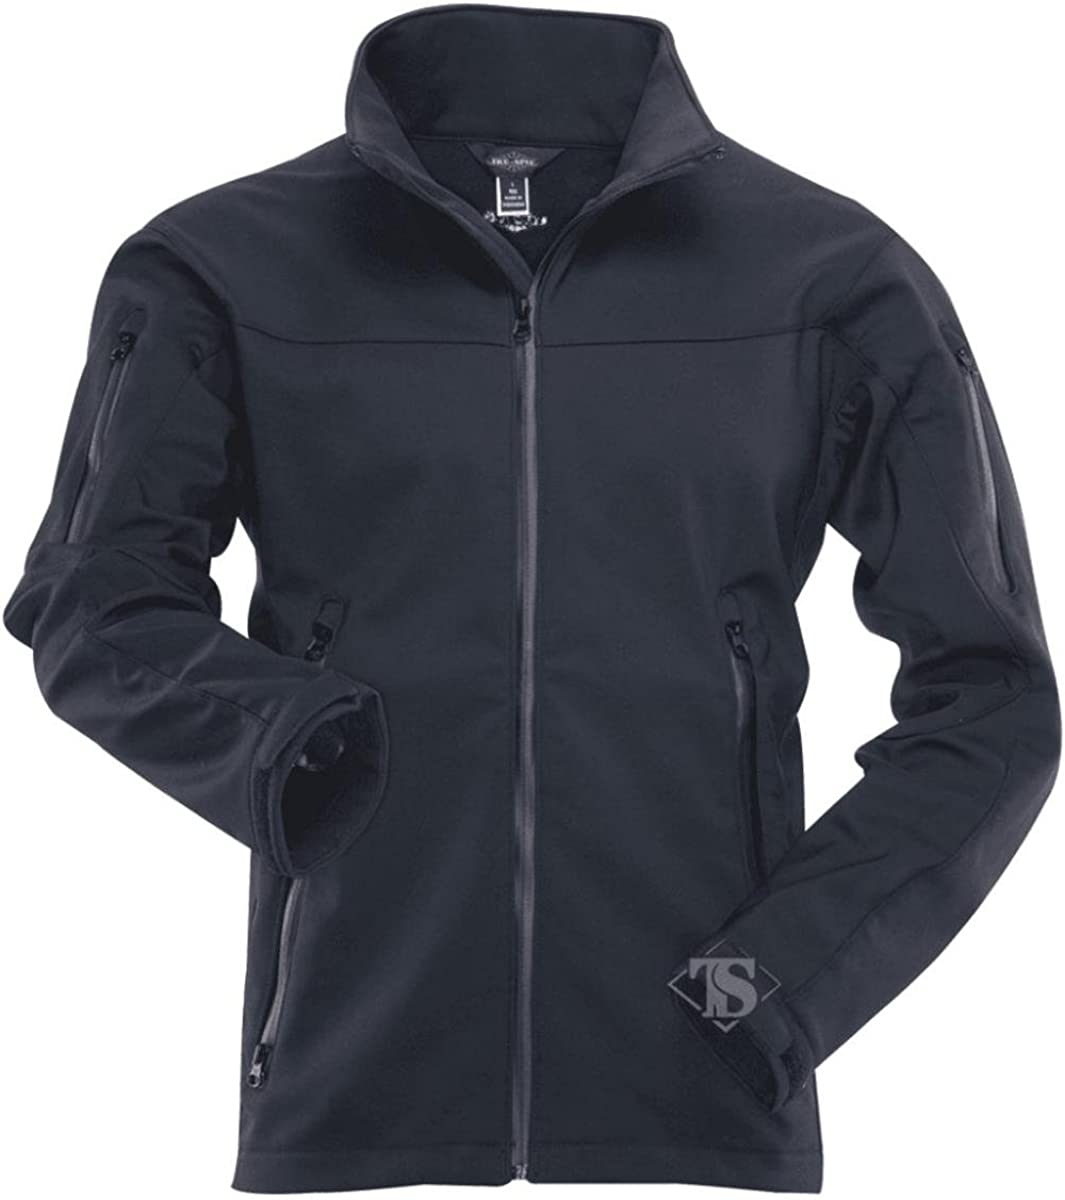 Tru-Spec Men's NEW before selling 24-7 Tactical Softshell 1 year warranty Loop Without Jacket